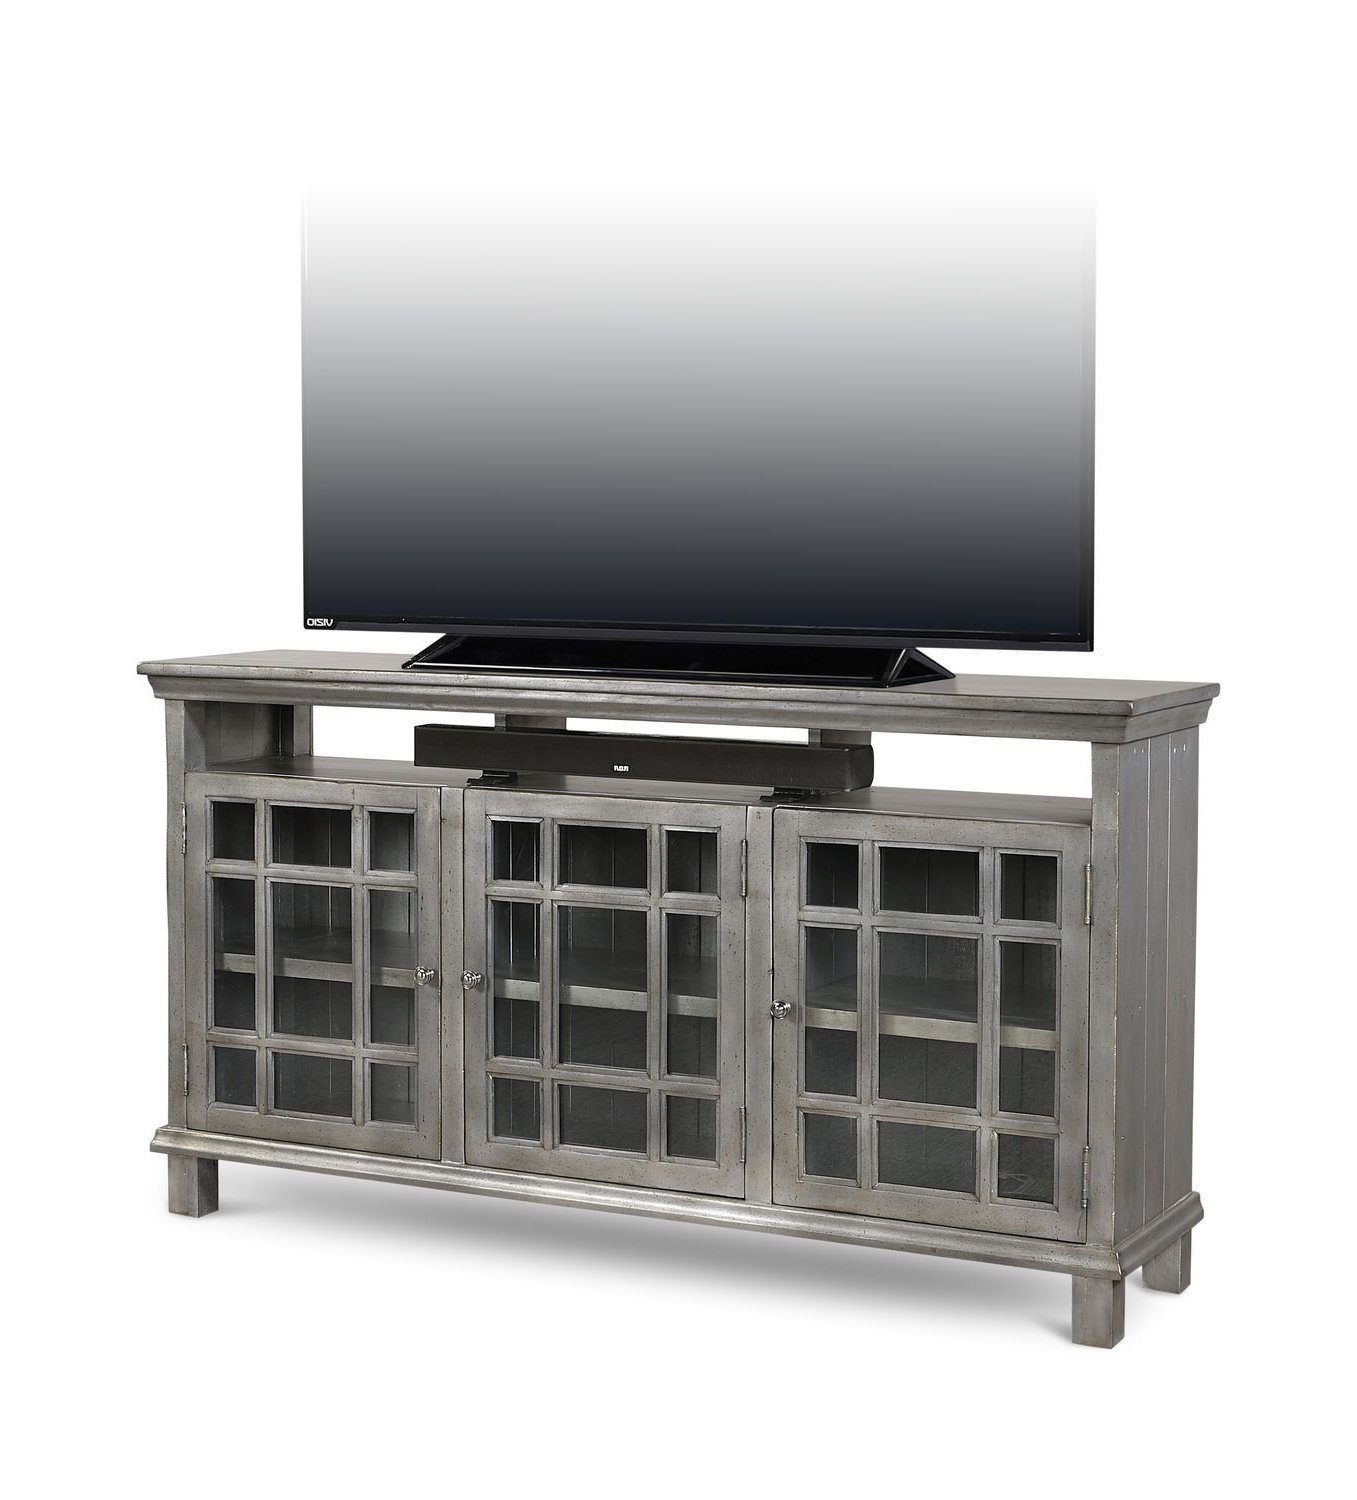 Preferences Metallic 65″ Media Console | Boho Chic | Pinterest With Regard To Sinclair Grey 54 Inch Tv Stands (View 15 of 20)